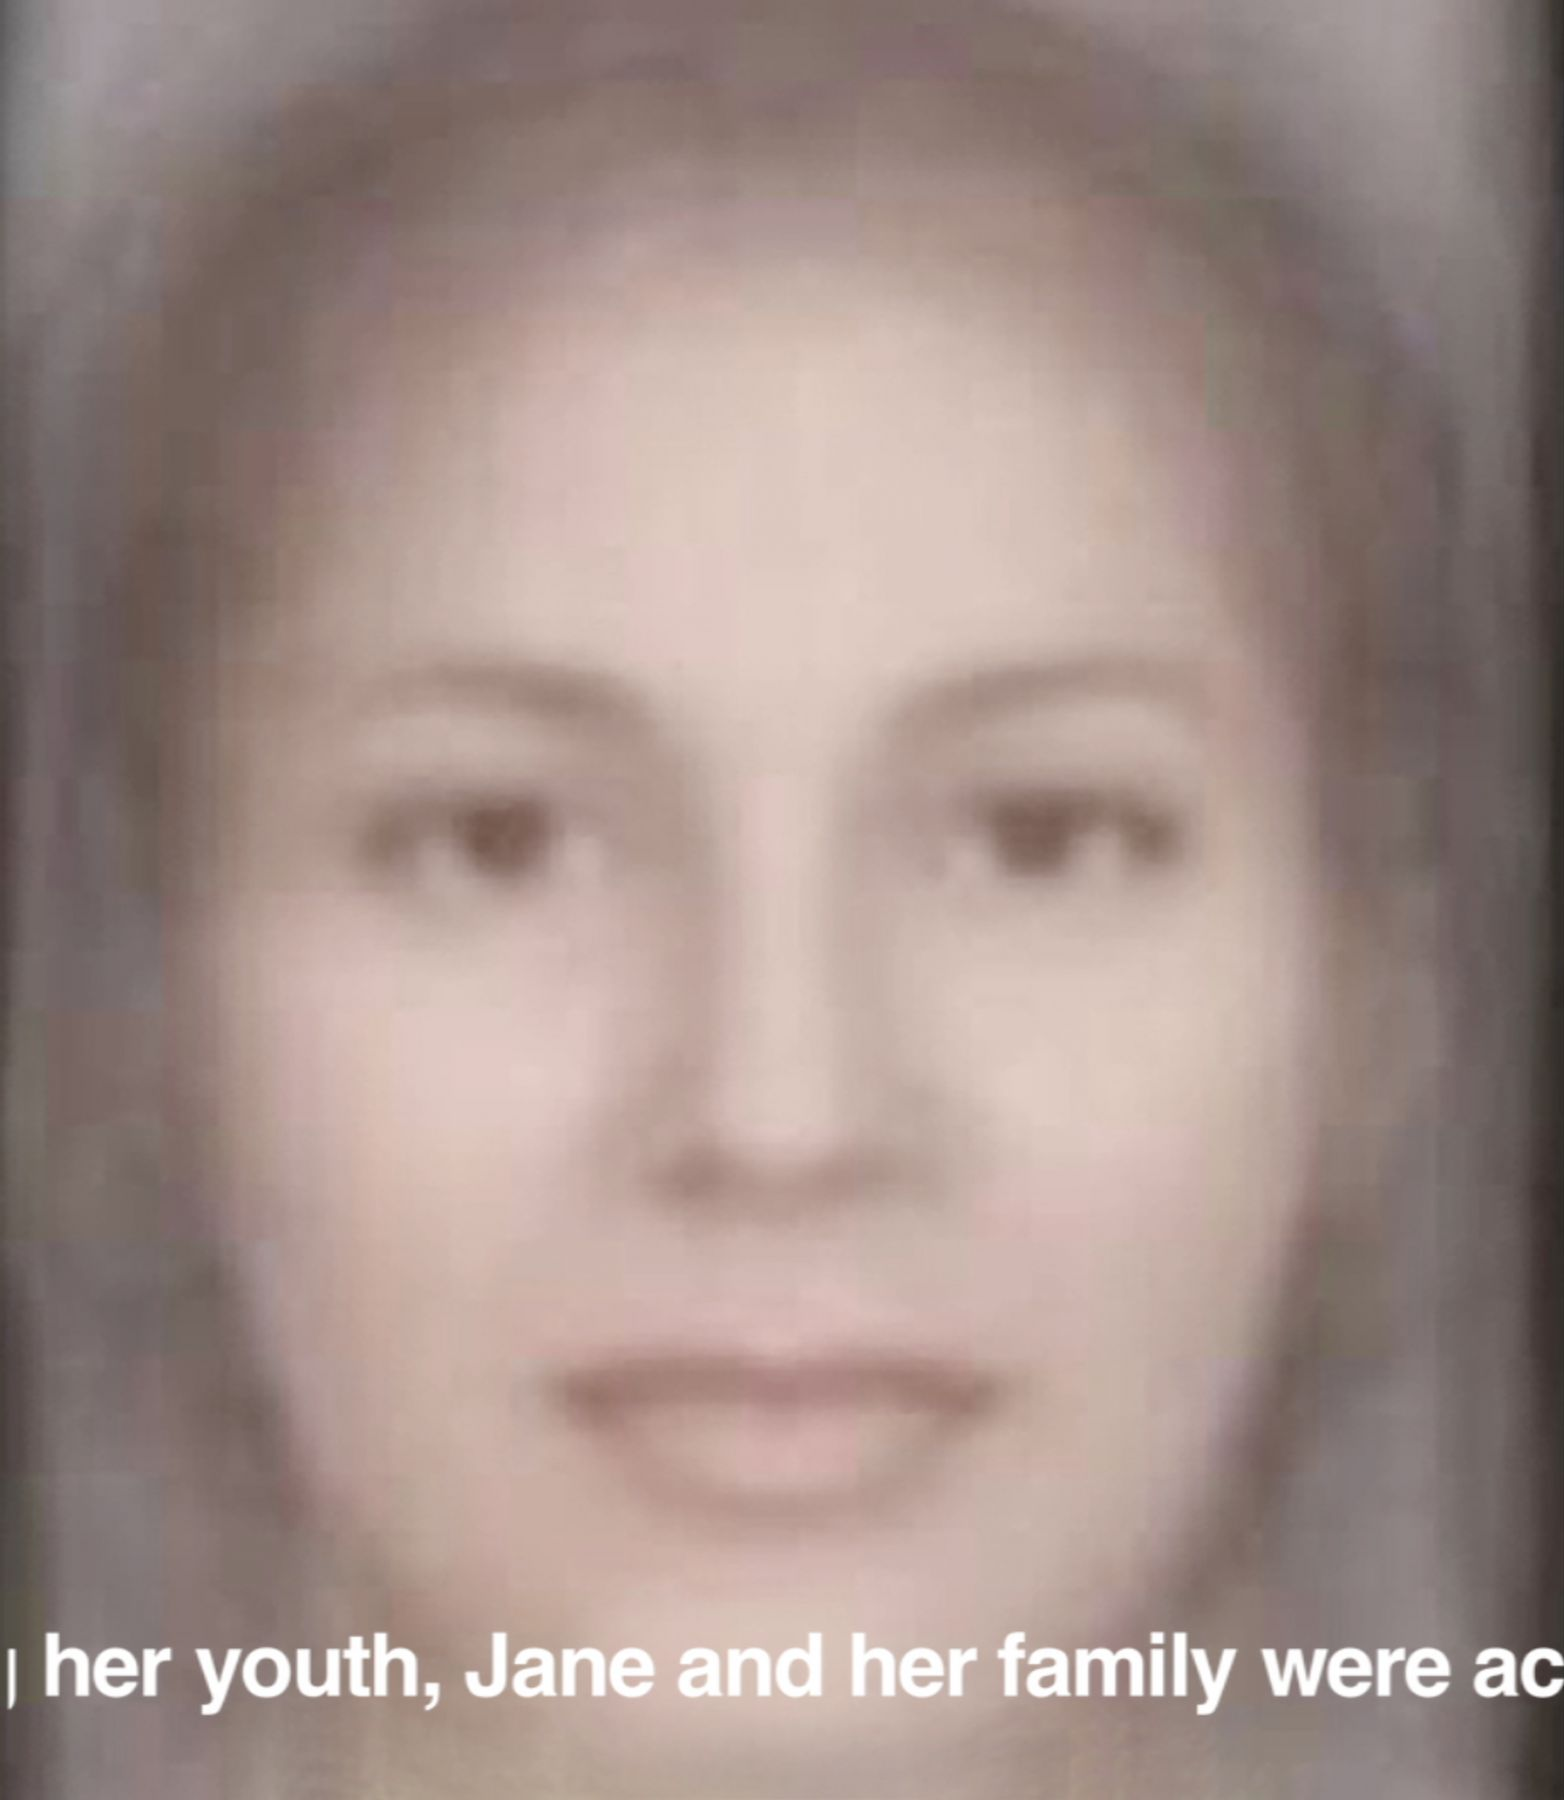 Jane Doe, 2012/2015, Digital video, 45 min 44 sec